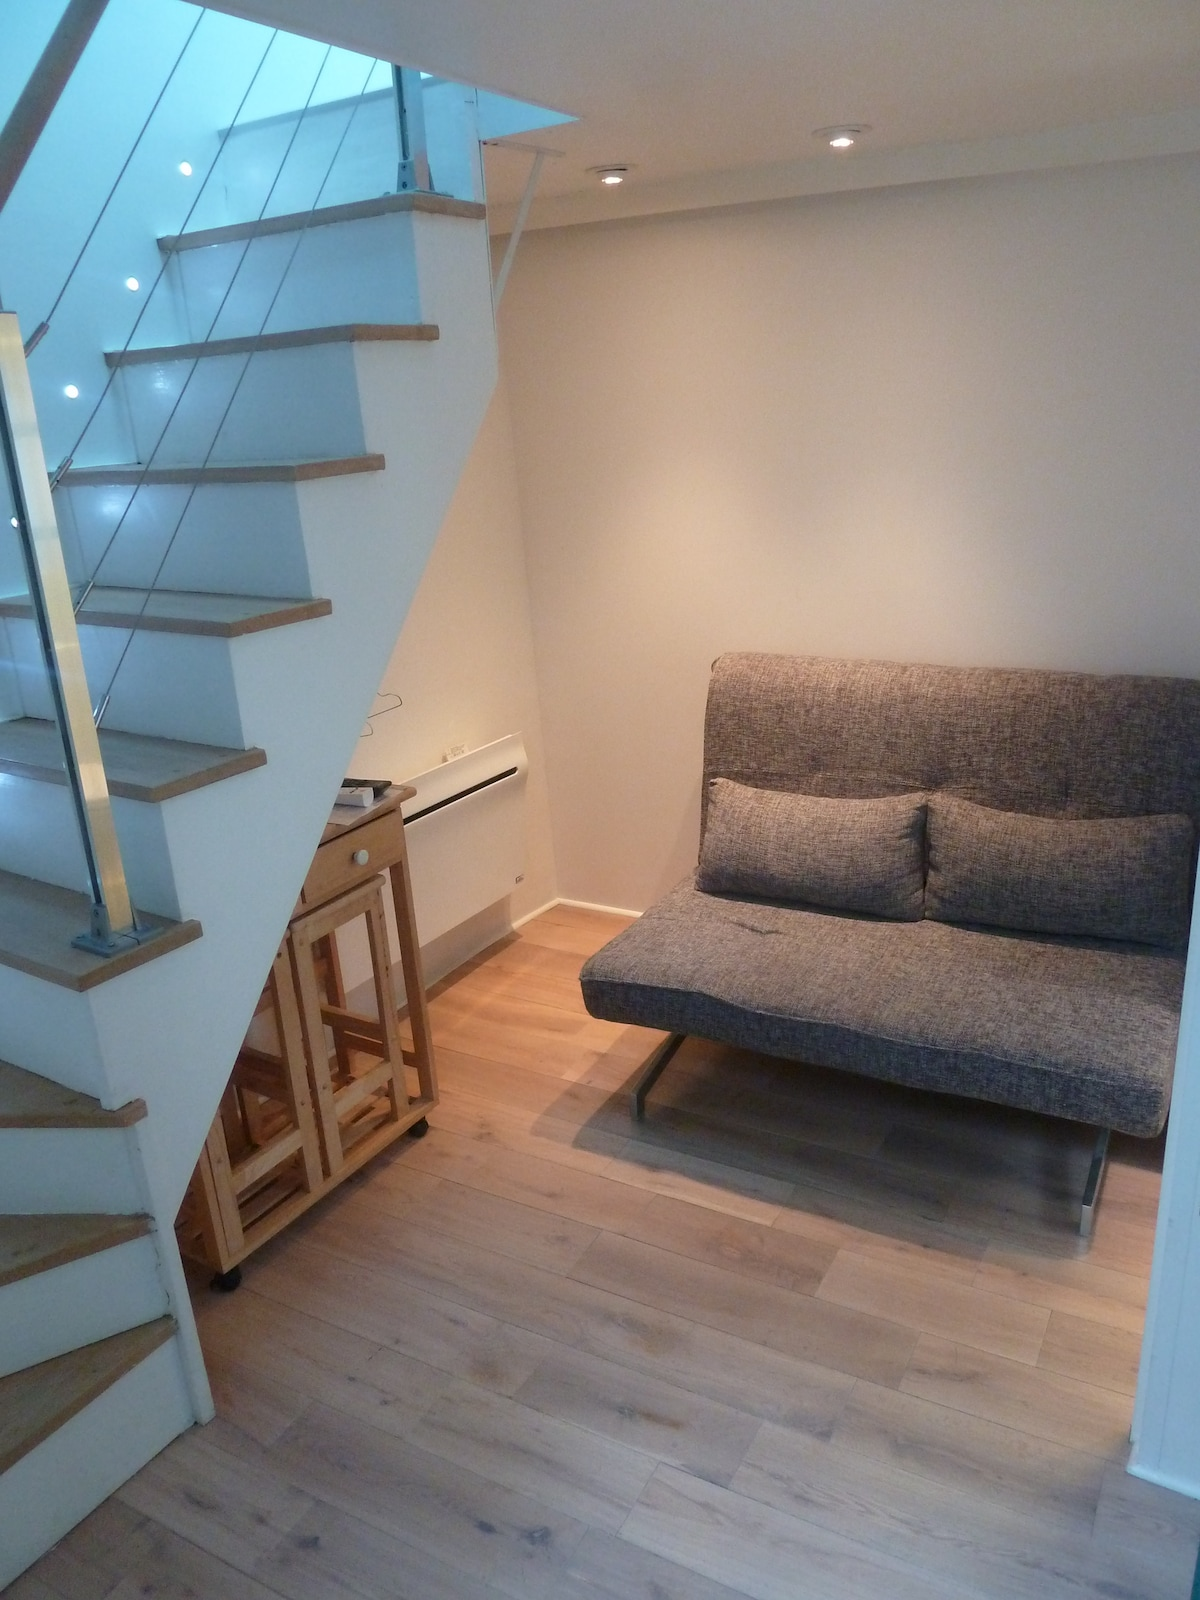 Sofa bed in living room with stairs up to bedroom